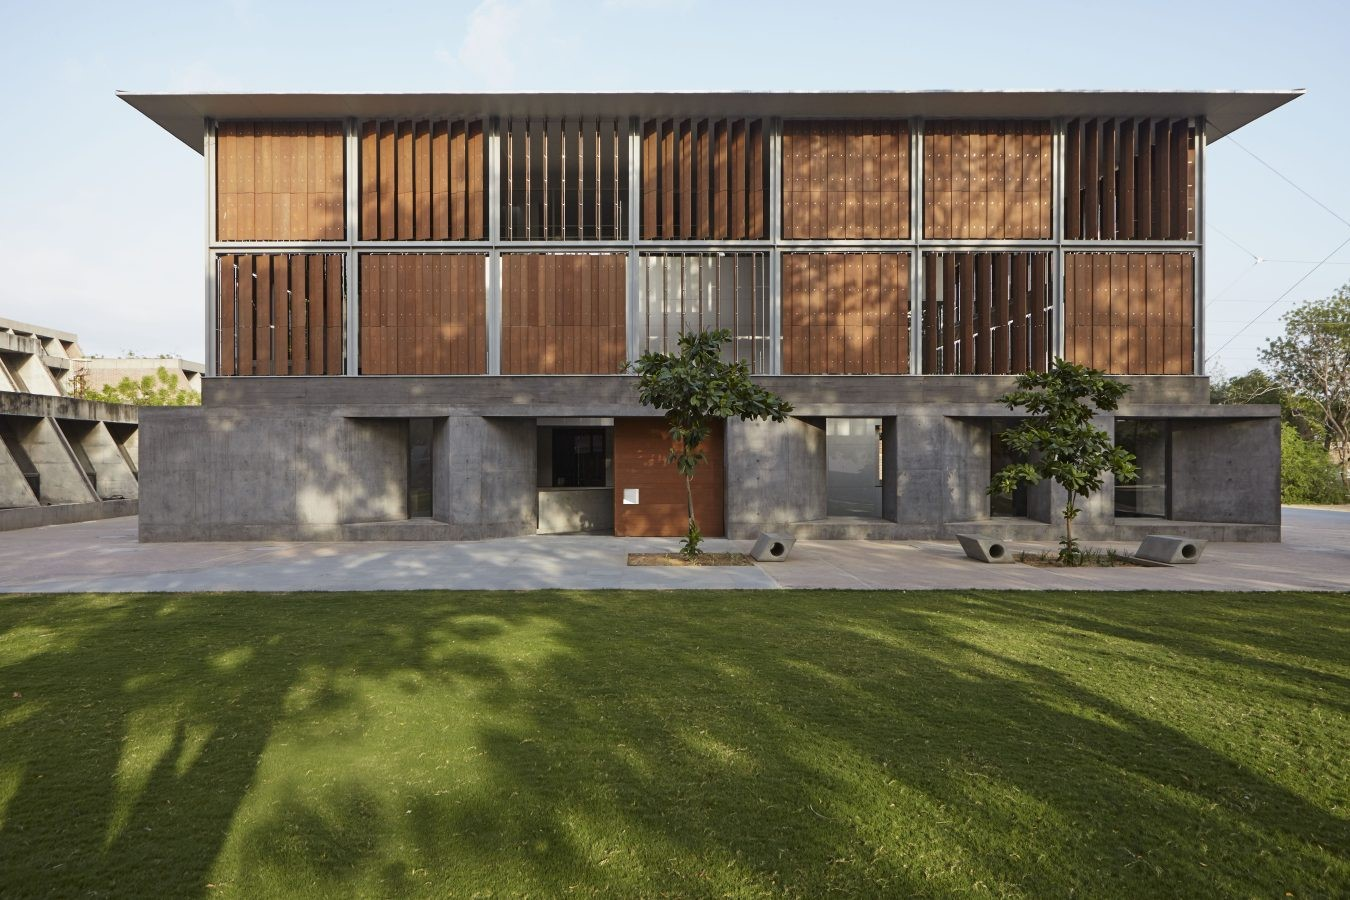 The CEPT University Library, Ahmedabad by Rahul Mehrotra: Spaces within the spaces - Sheet1